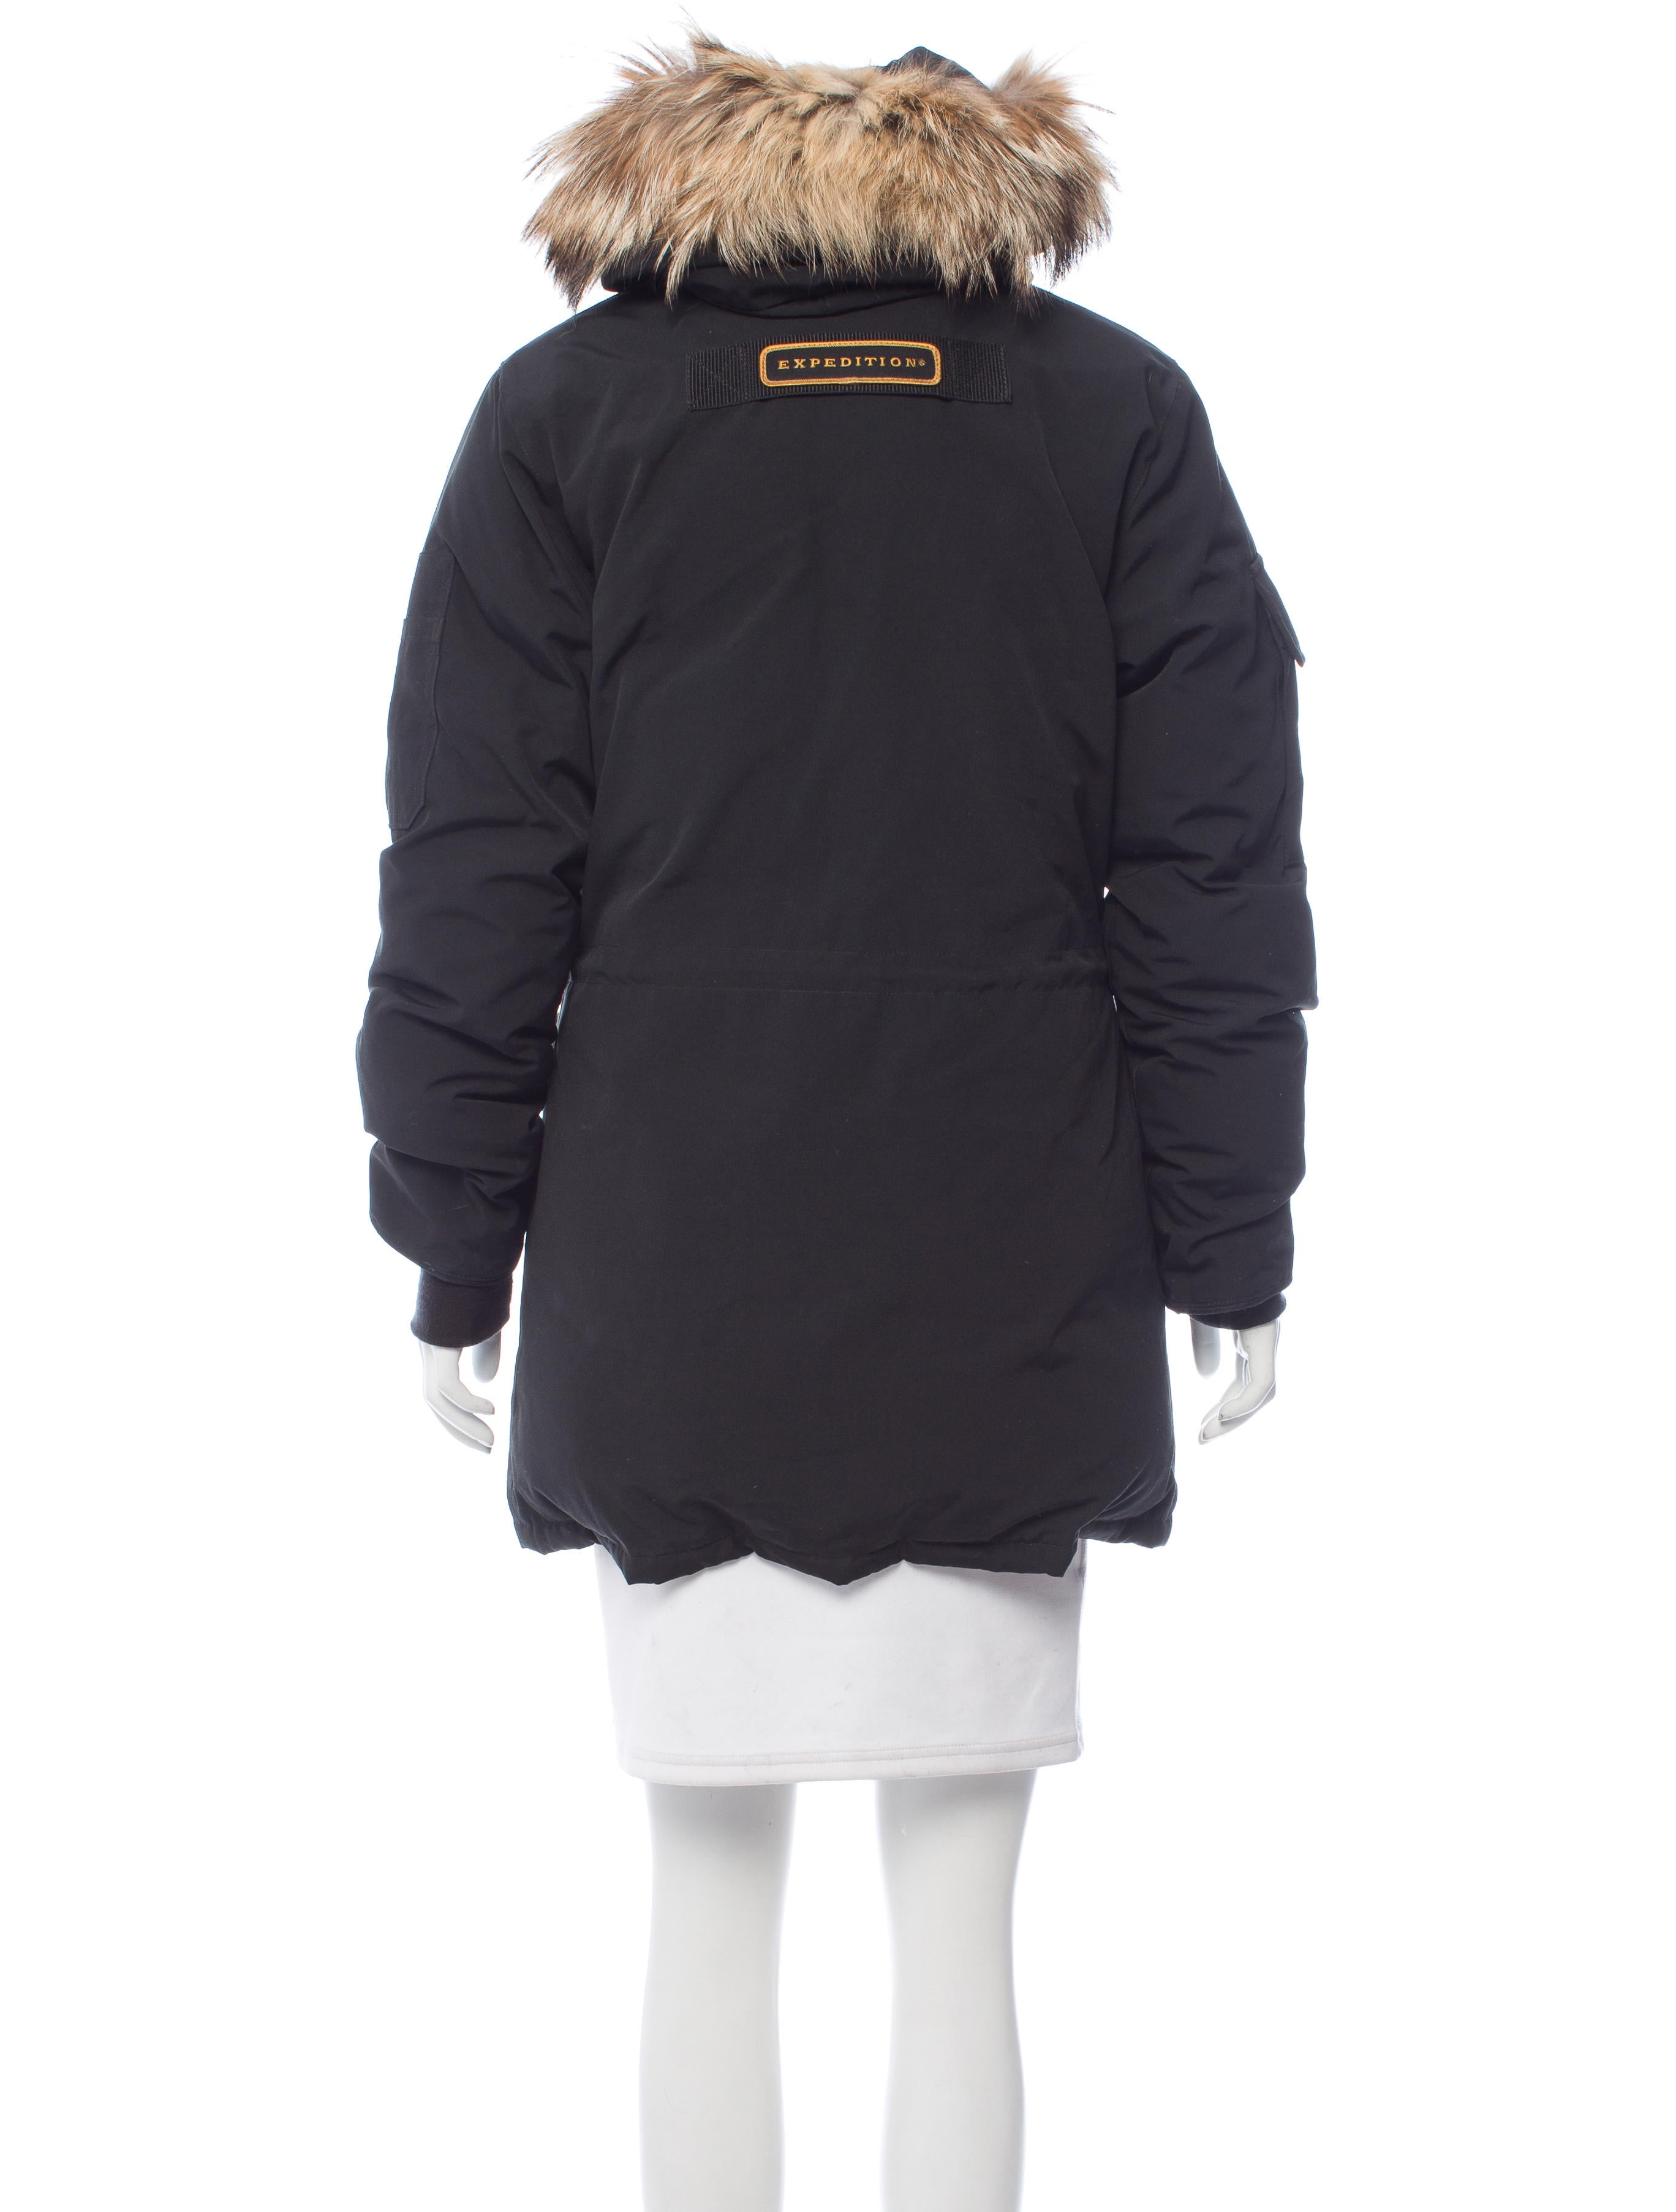 Canada Goose Expedition Fur Accented Parka Clothing